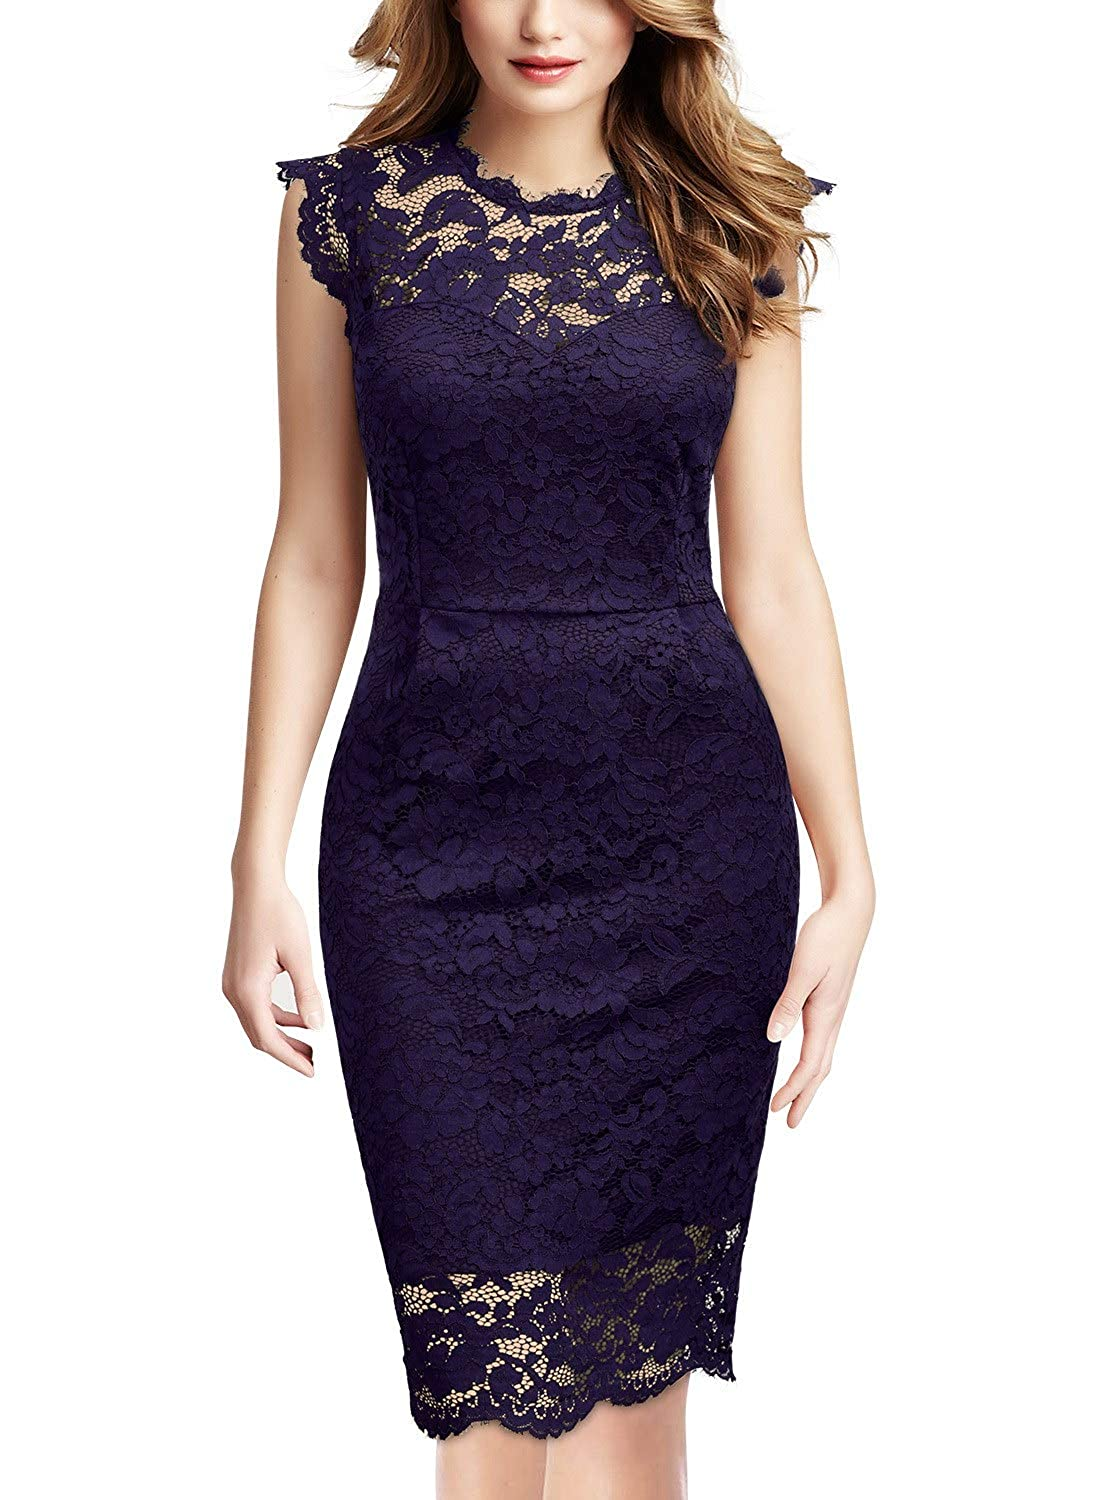 Purple Miusol Women's Retro Floral Lace Long Sleeve Slim Evening Cocktail Mini Dress